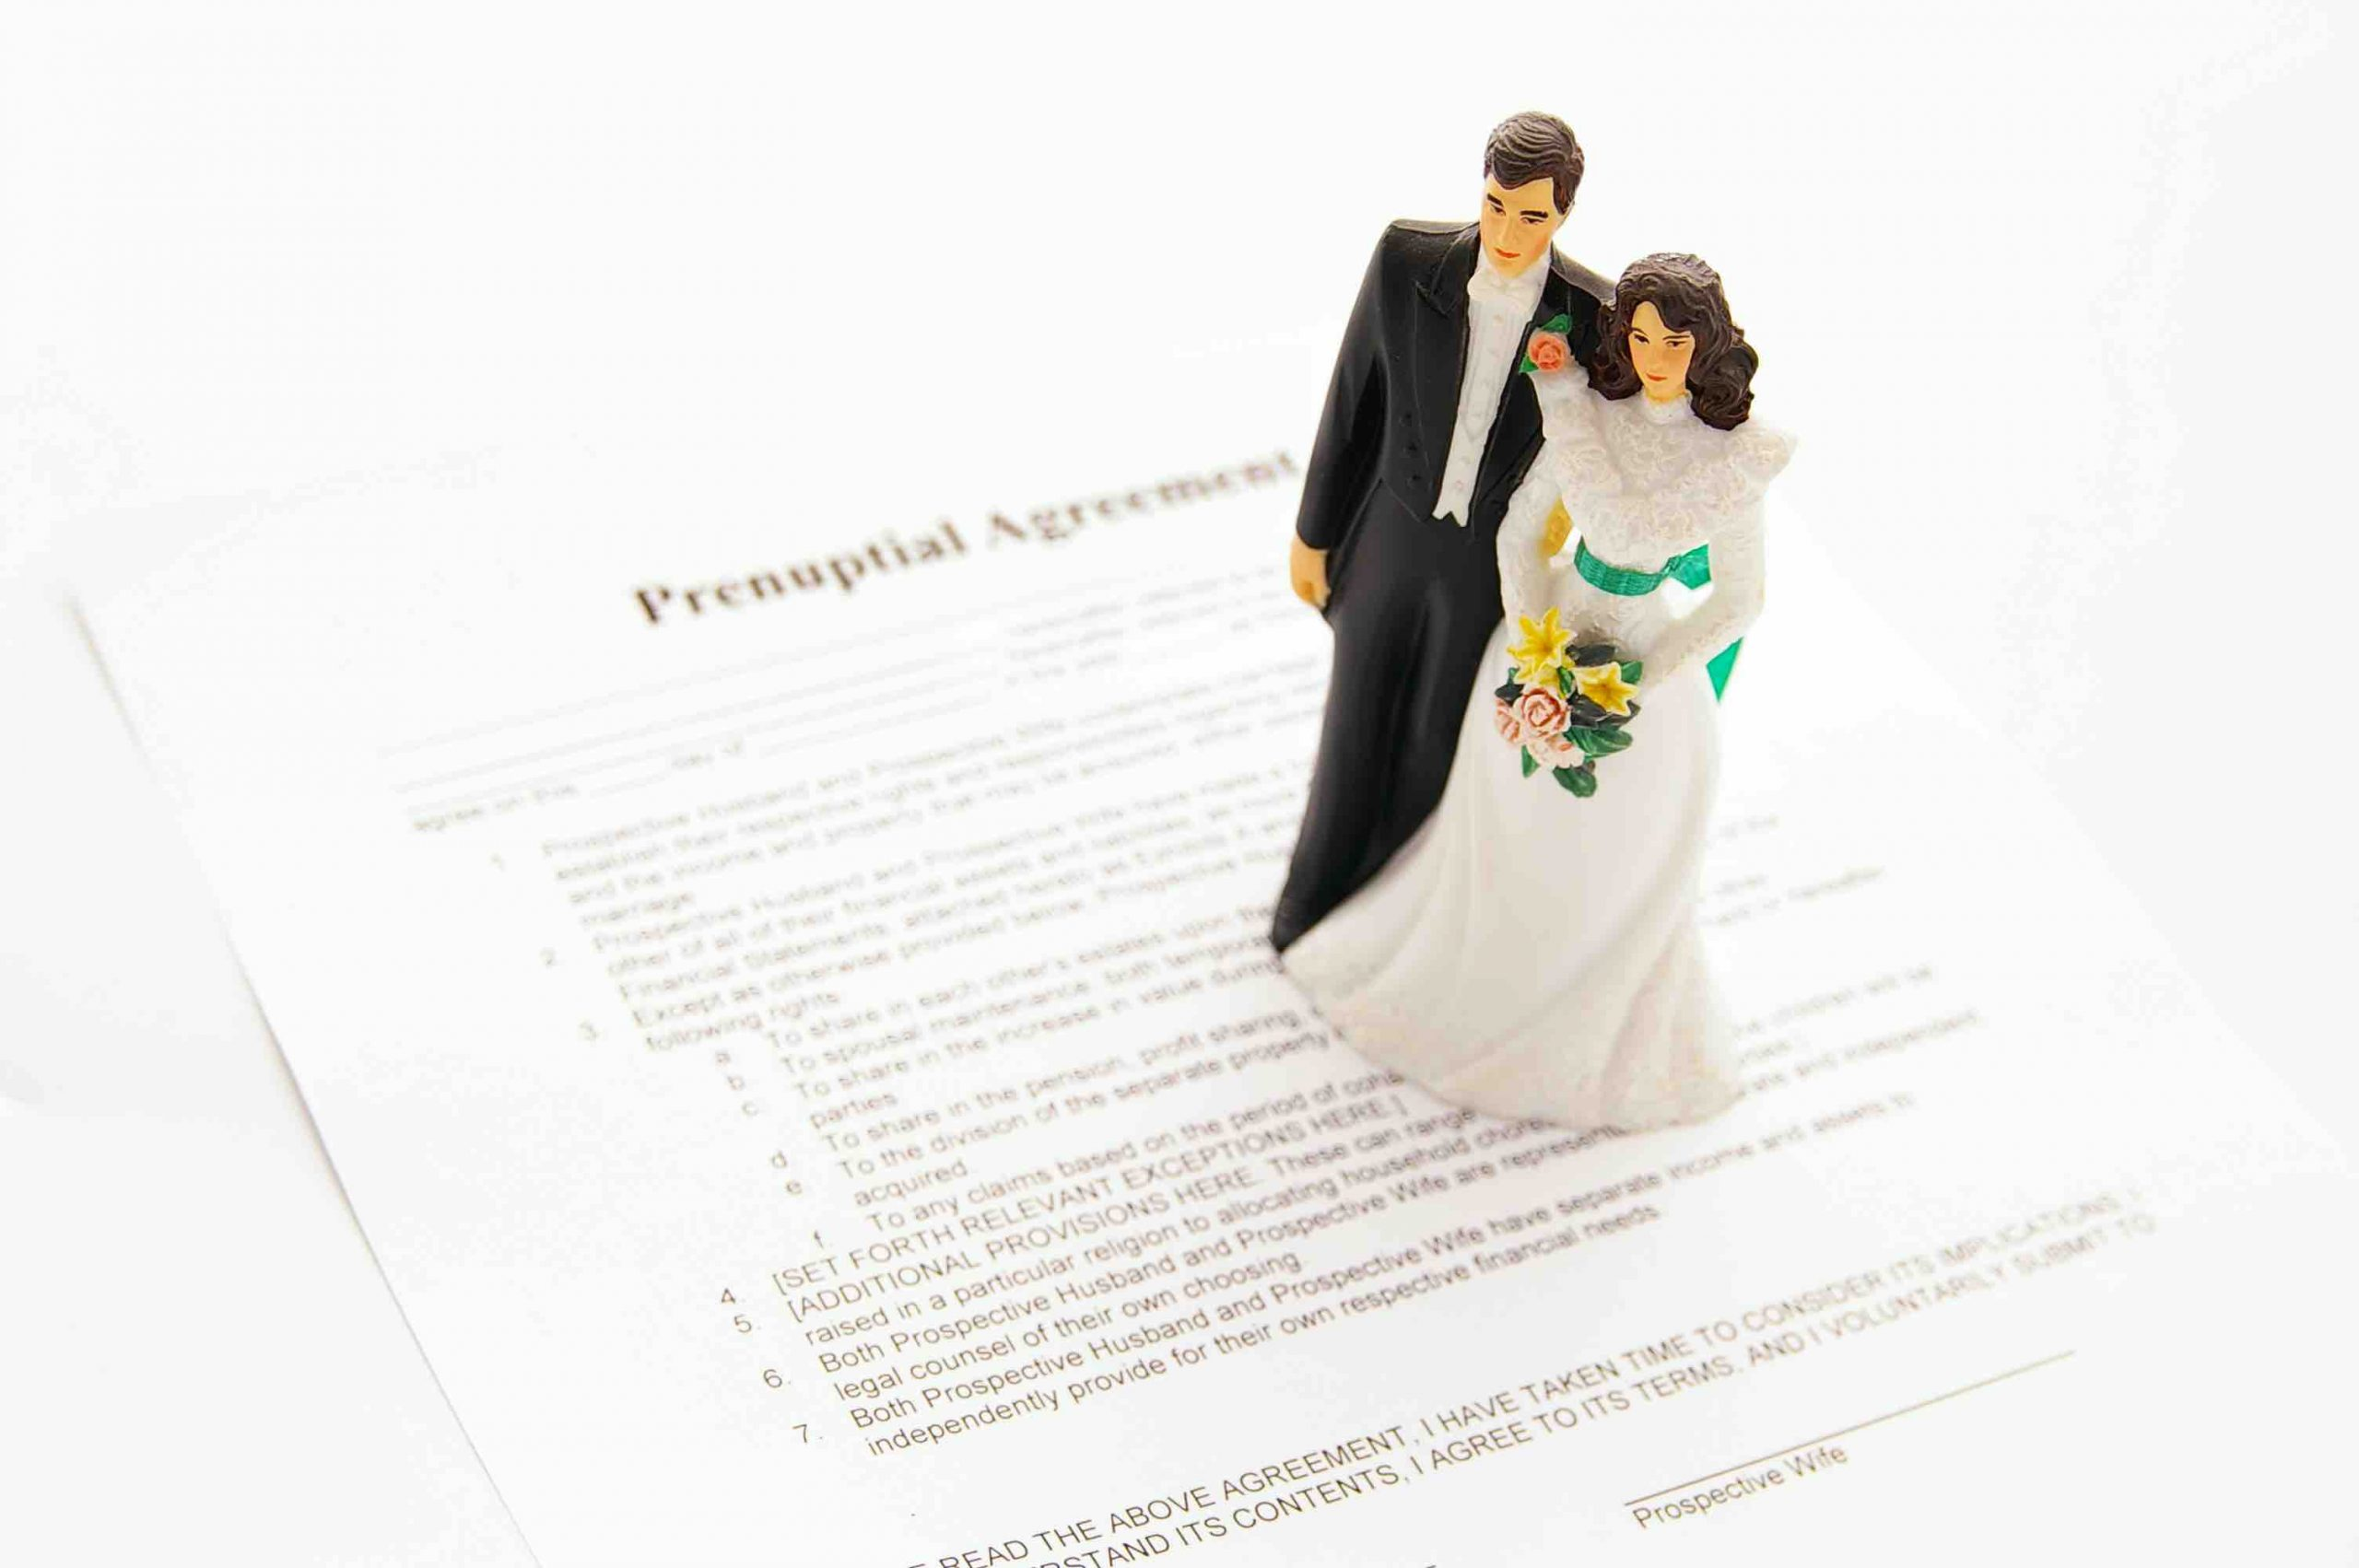 A marriage couple cartoon model standing on a prenuptial agreements